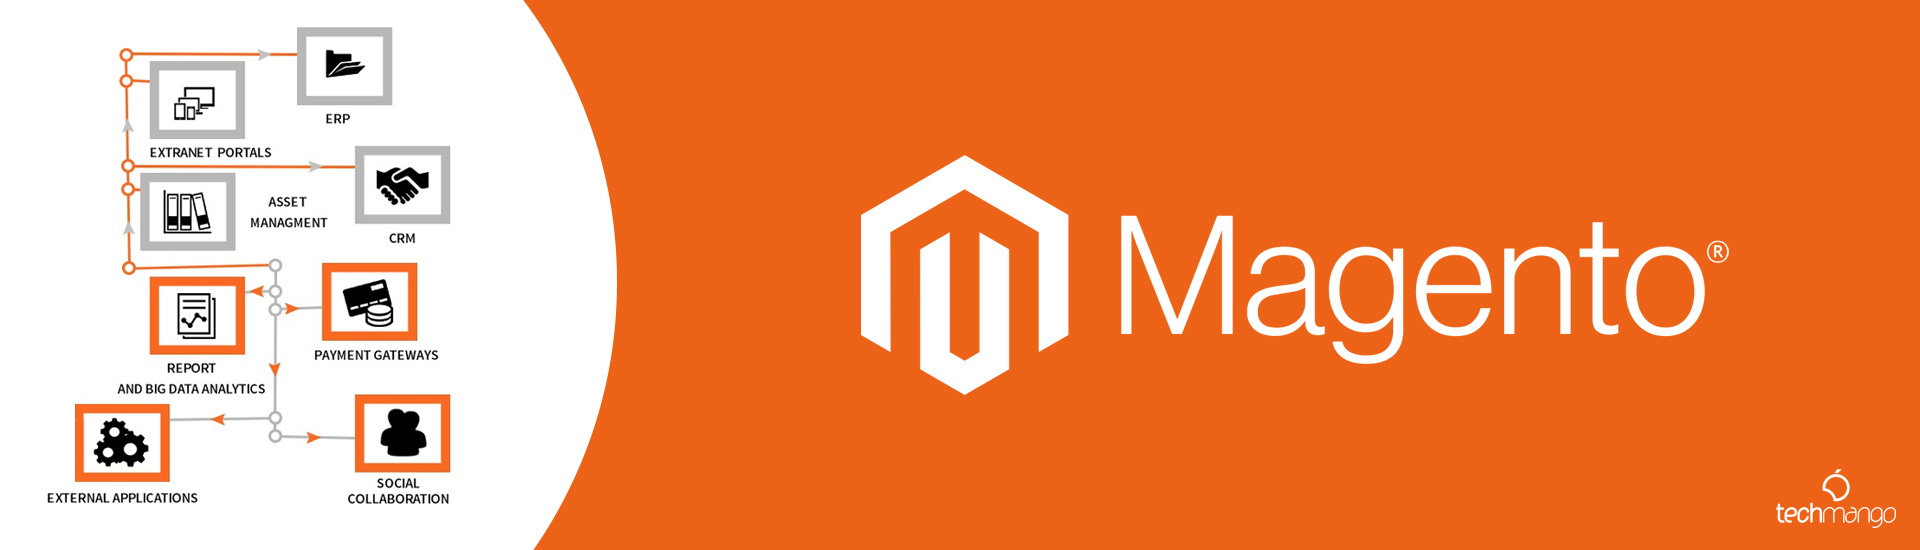 Magento is the Best E-Commerce Platform